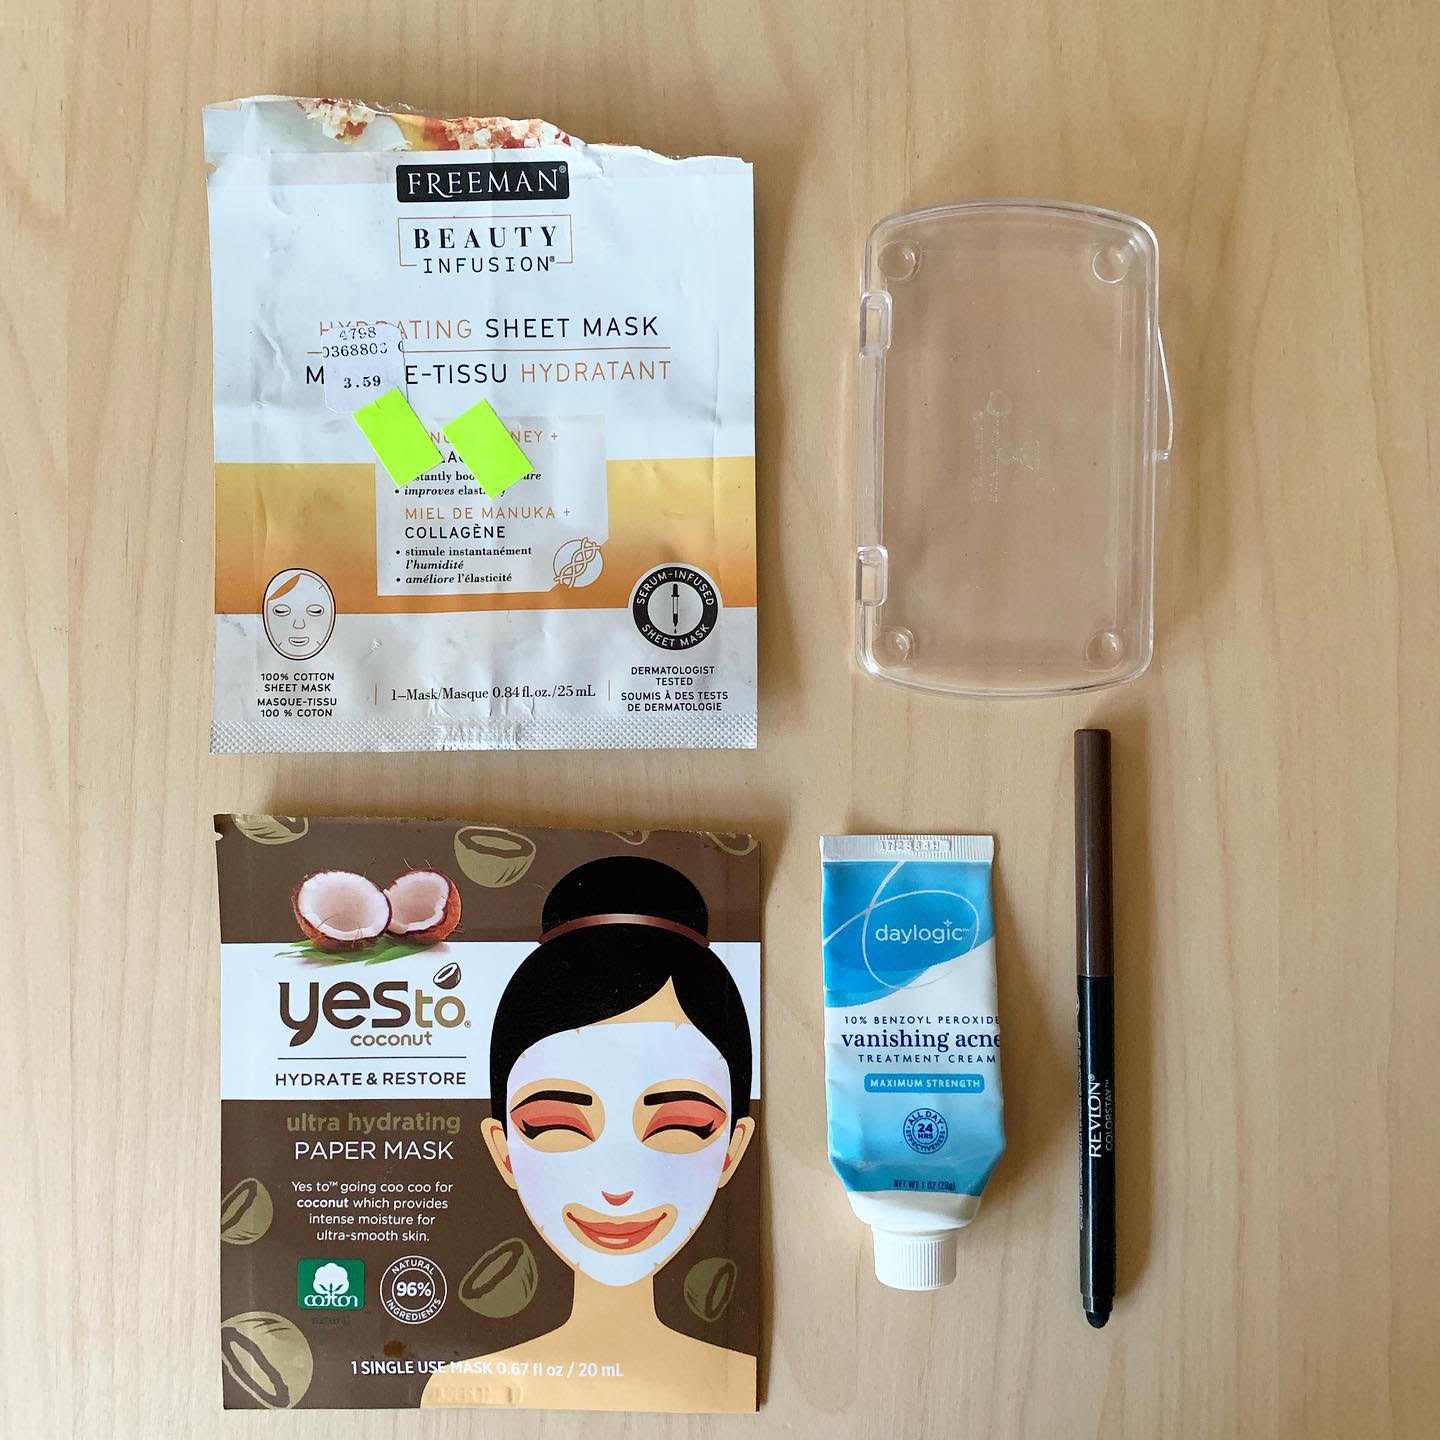 A photograph of empty beauty products - two face masks, a skincare product, an eyeliner, and a plastic box (representing a bar of soap).